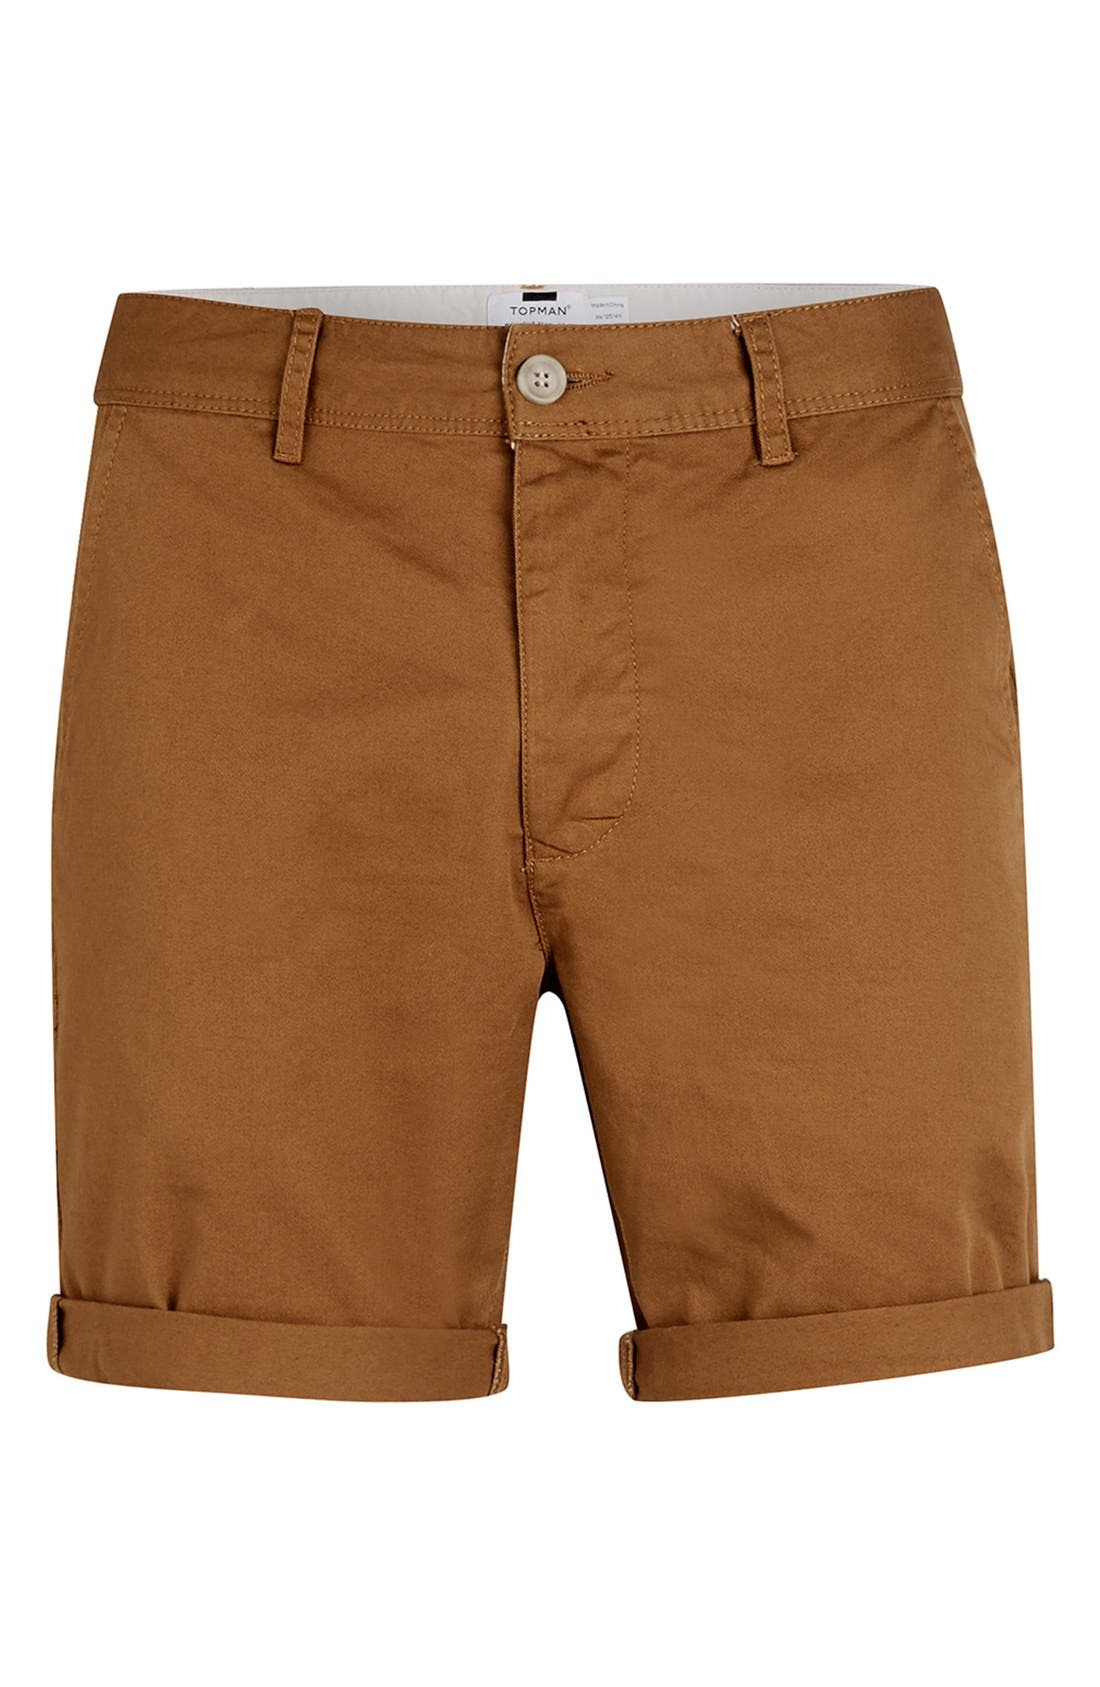 Chino Shorts,                             Alternate thumbnail 4, color,                             Mustard